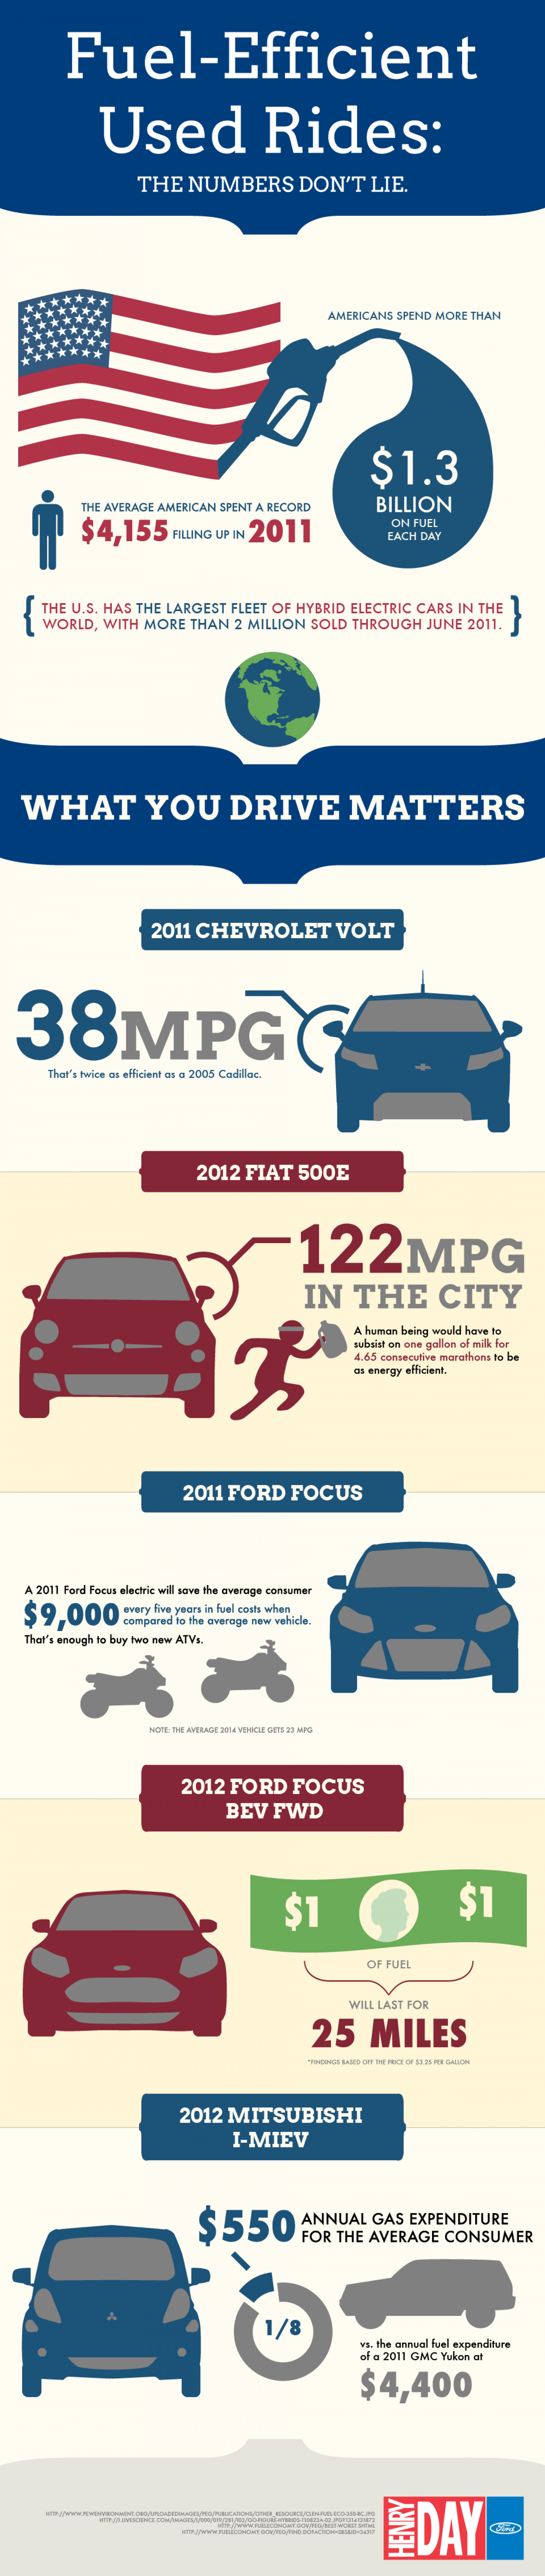 Fuel-Efficient Used Rides Infographic